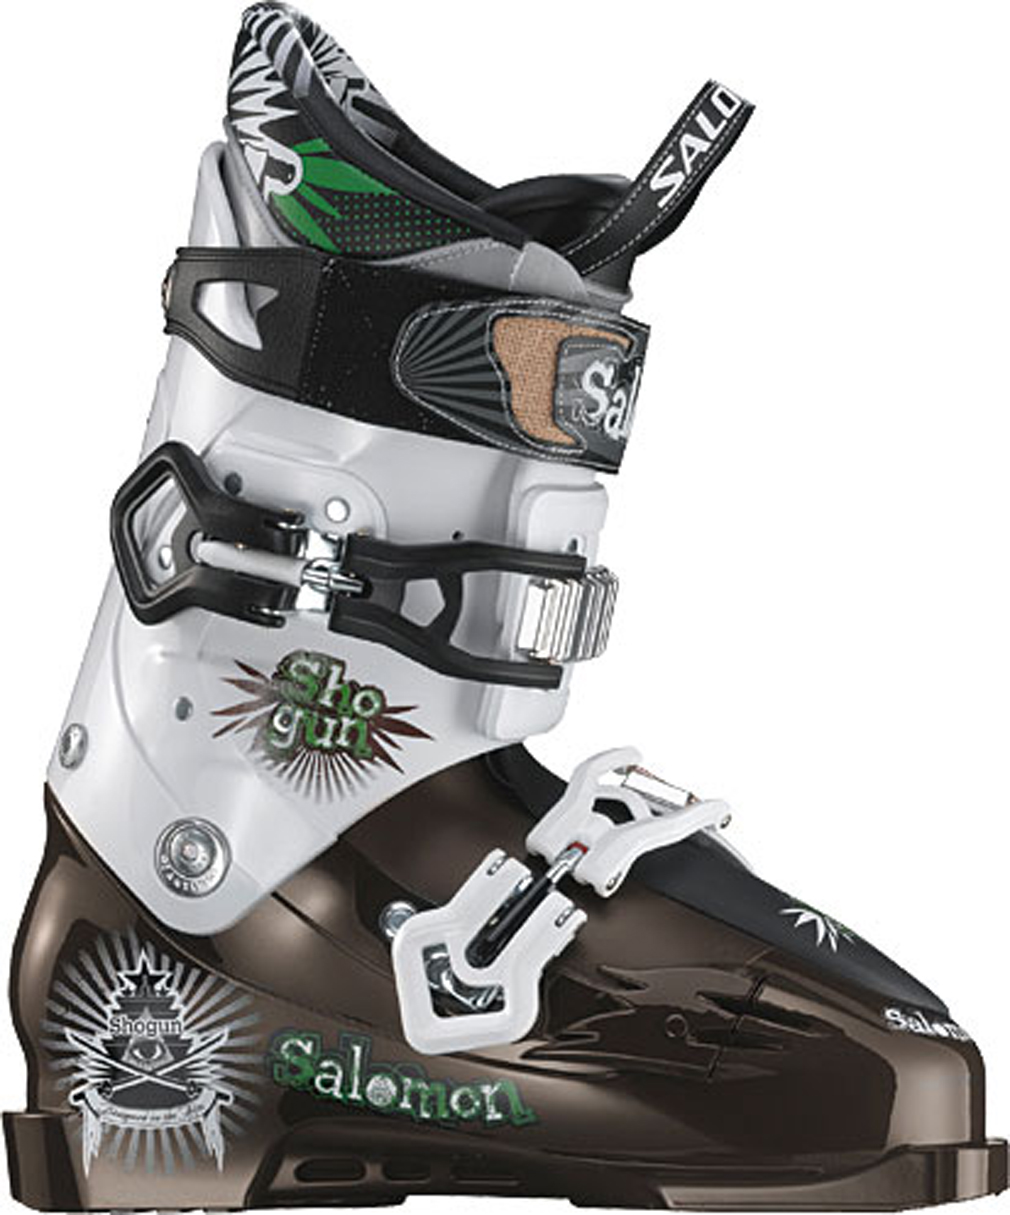 Ski If the semi-robotic and futuristic appearance of the Salomon Shogun Ski Boots is not enough to make a customer aware of the fact that these particular boots have more gadgets and frills than a Swiss Army knife than its list of attributes definitely is. These boots include a special series of 3D twisting buckles designed specifically to allow the wearer a greater degree of motion while wearing them. They also come with a shock-absorbing foot board to aid you in those difficult landings that do not always go as planned. Key Features of the Salomon Shogun Ski Boots:  World cup advanced shell technology  My Custom Fit Race  Sensitive liner  2 micro alu oversized buckles  3D buckle  Double dismantable canting  Dismantable flex rivet  Shock absorbing footboard  Flex: 100  Last: 98  Strap: 45 - $440.95